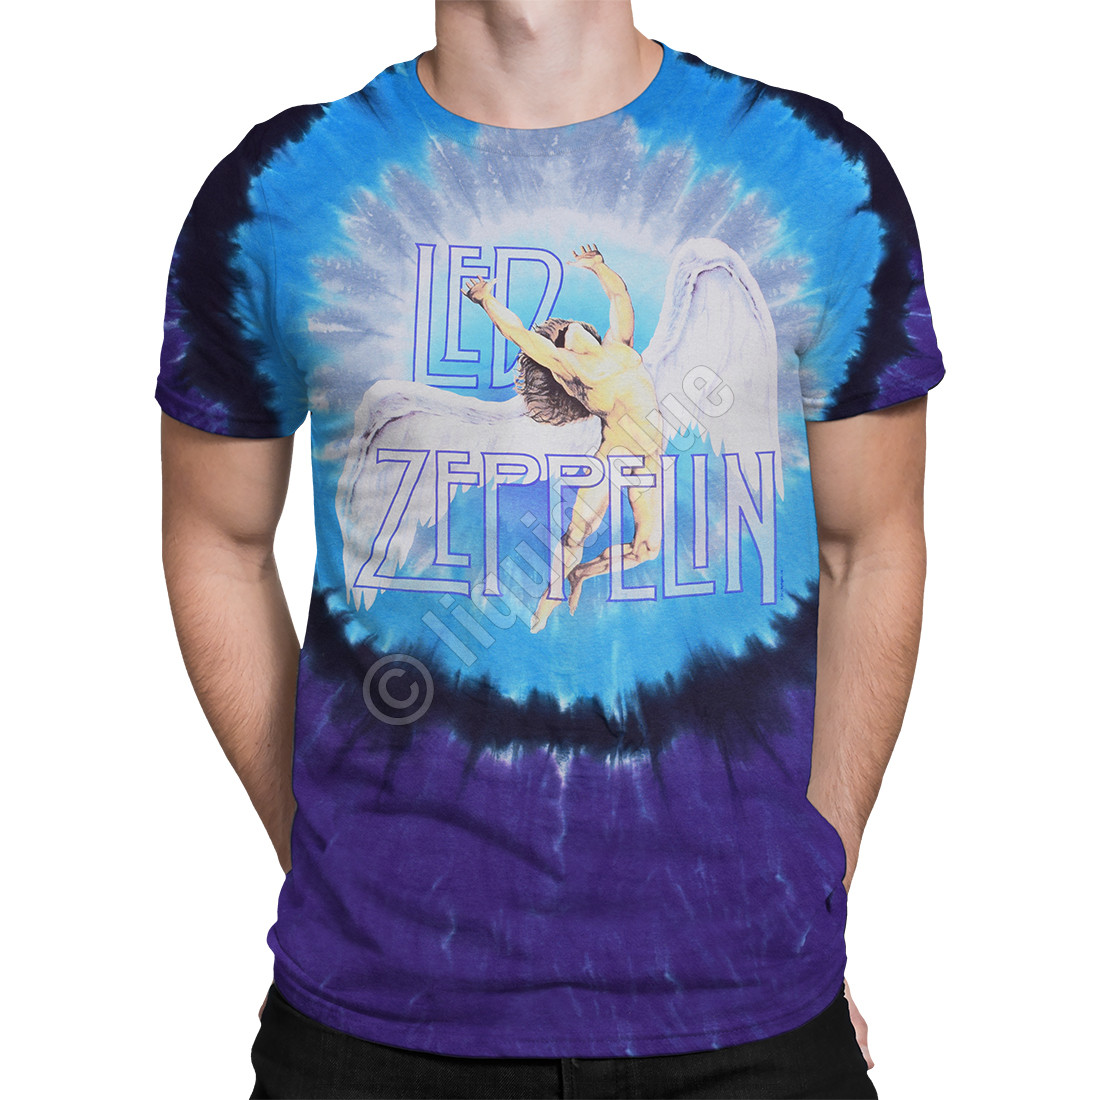 3c940a16 Led Zeppelin Swan Song Tie-Dye T-Shirt Tee Liquid Blue